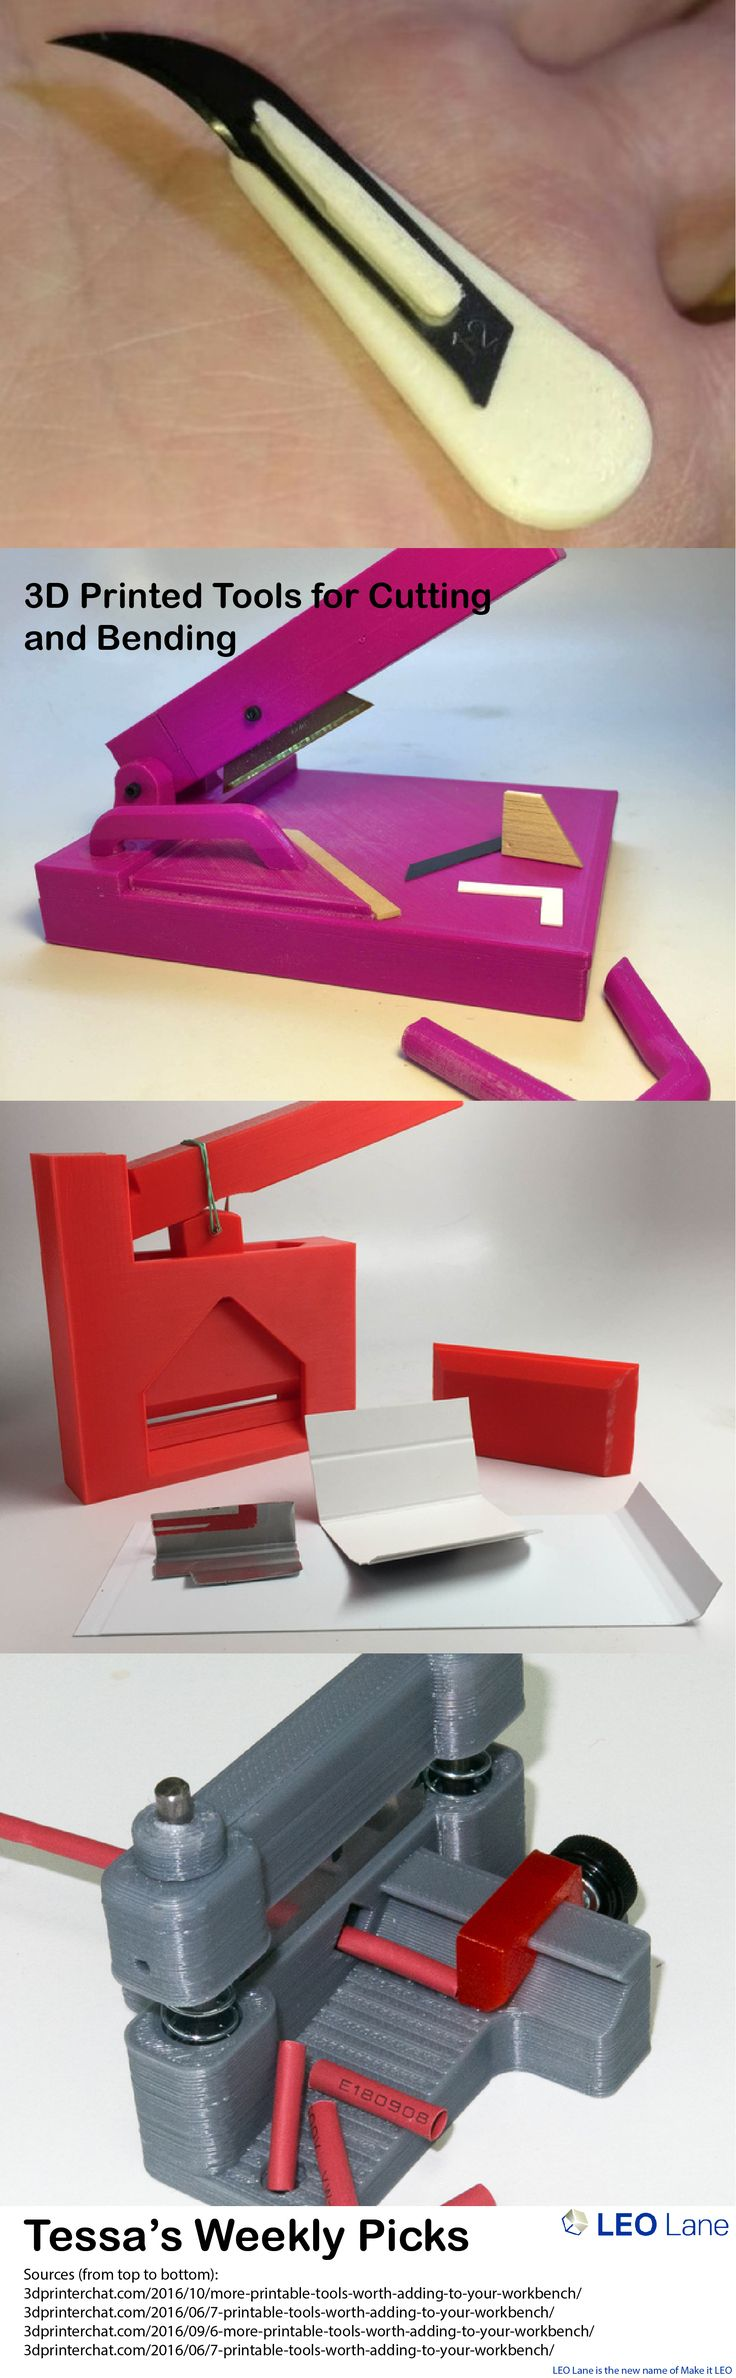 Tessa's Weekly Picks – 3D Printed Tools for Cutting and Bending